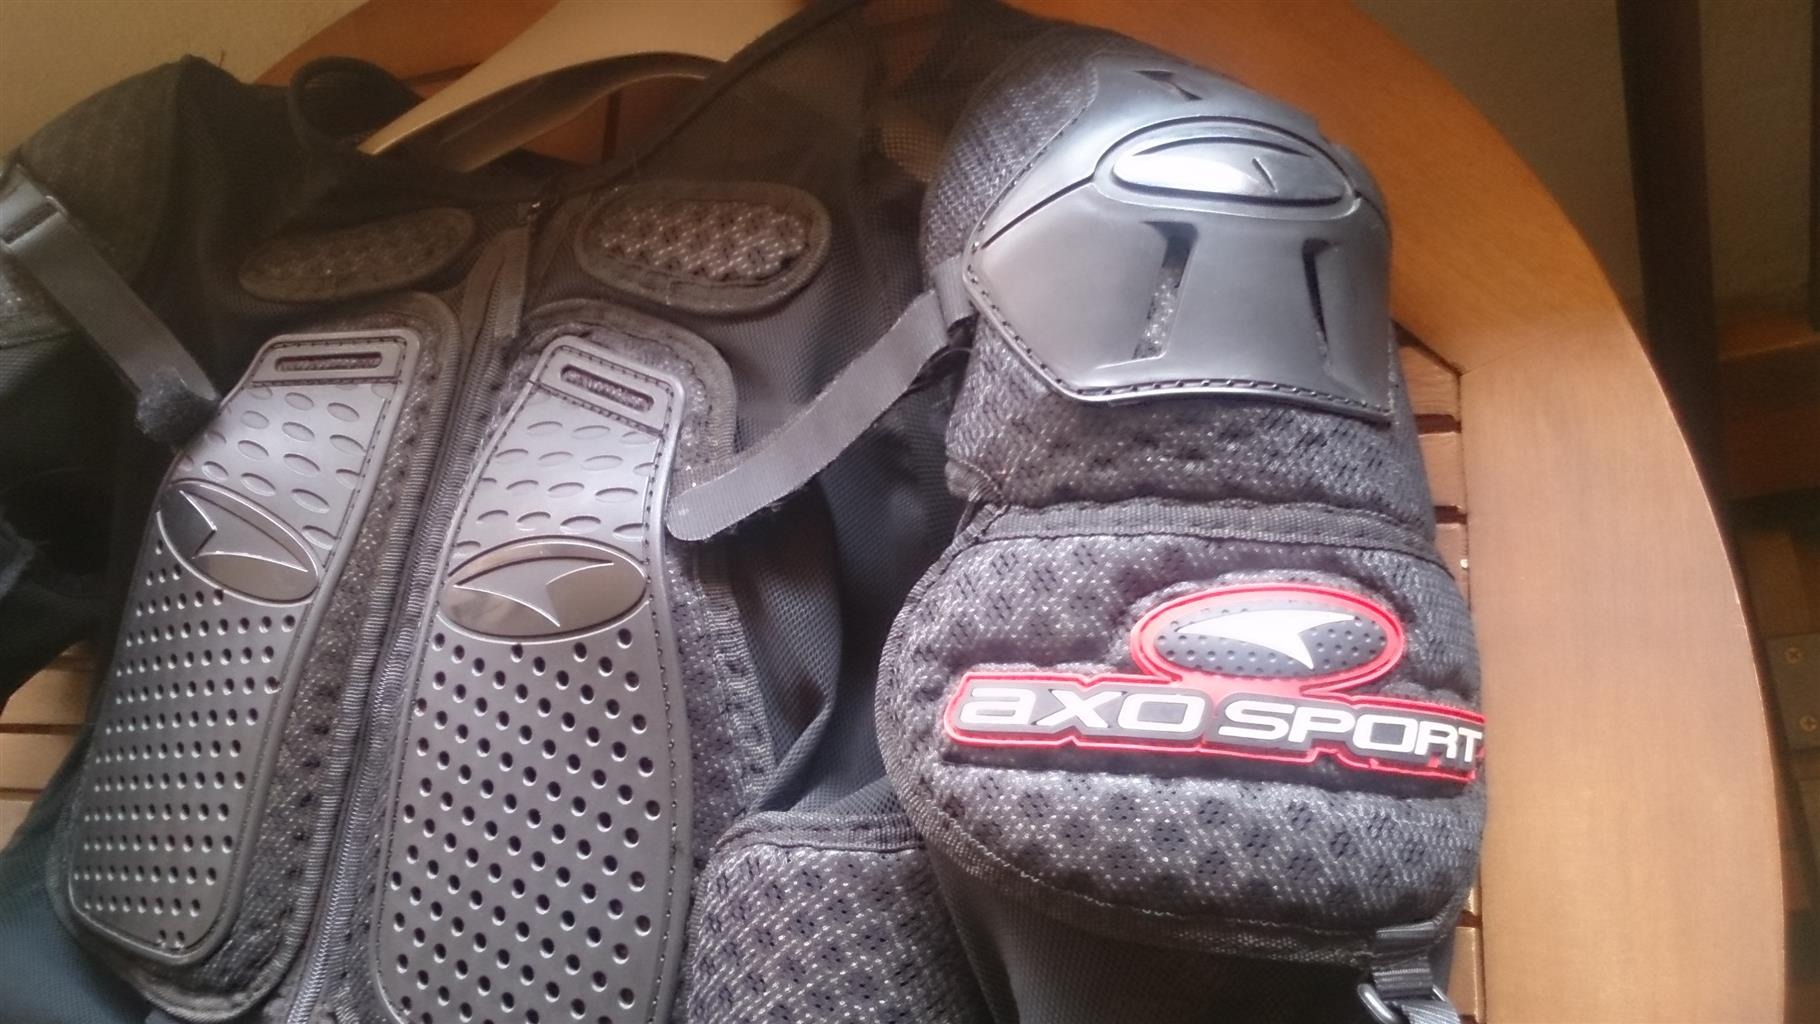 Motorcycle Gear Protective Gear